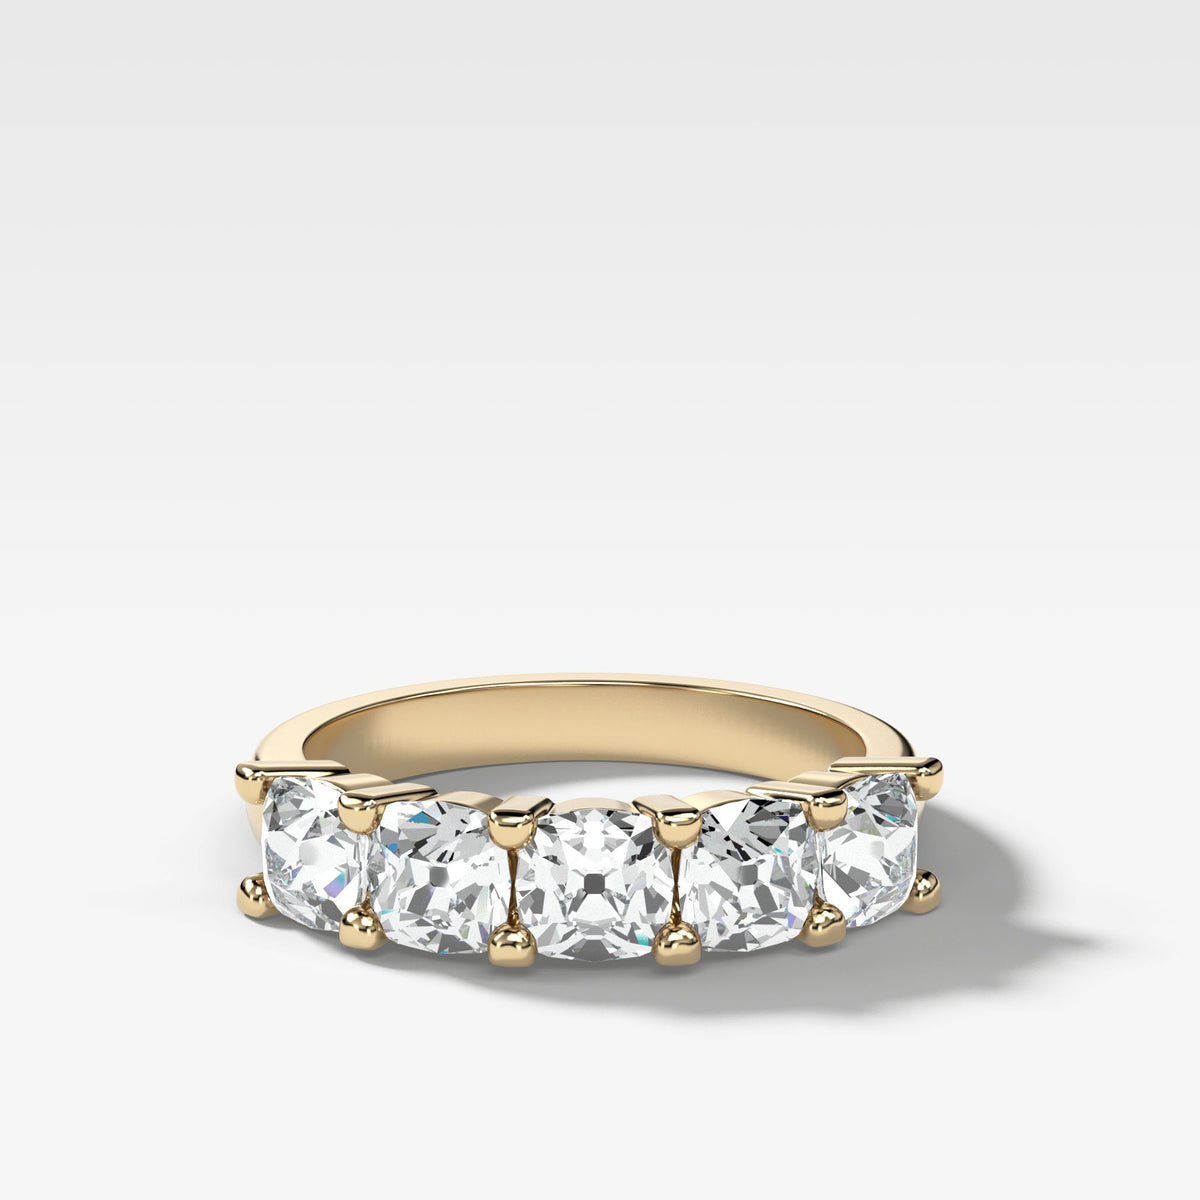 Five Stone Shared Prong Diamond Band With Old Mine Cuts (1.65ctw) In Yellow Gold By Good Stone